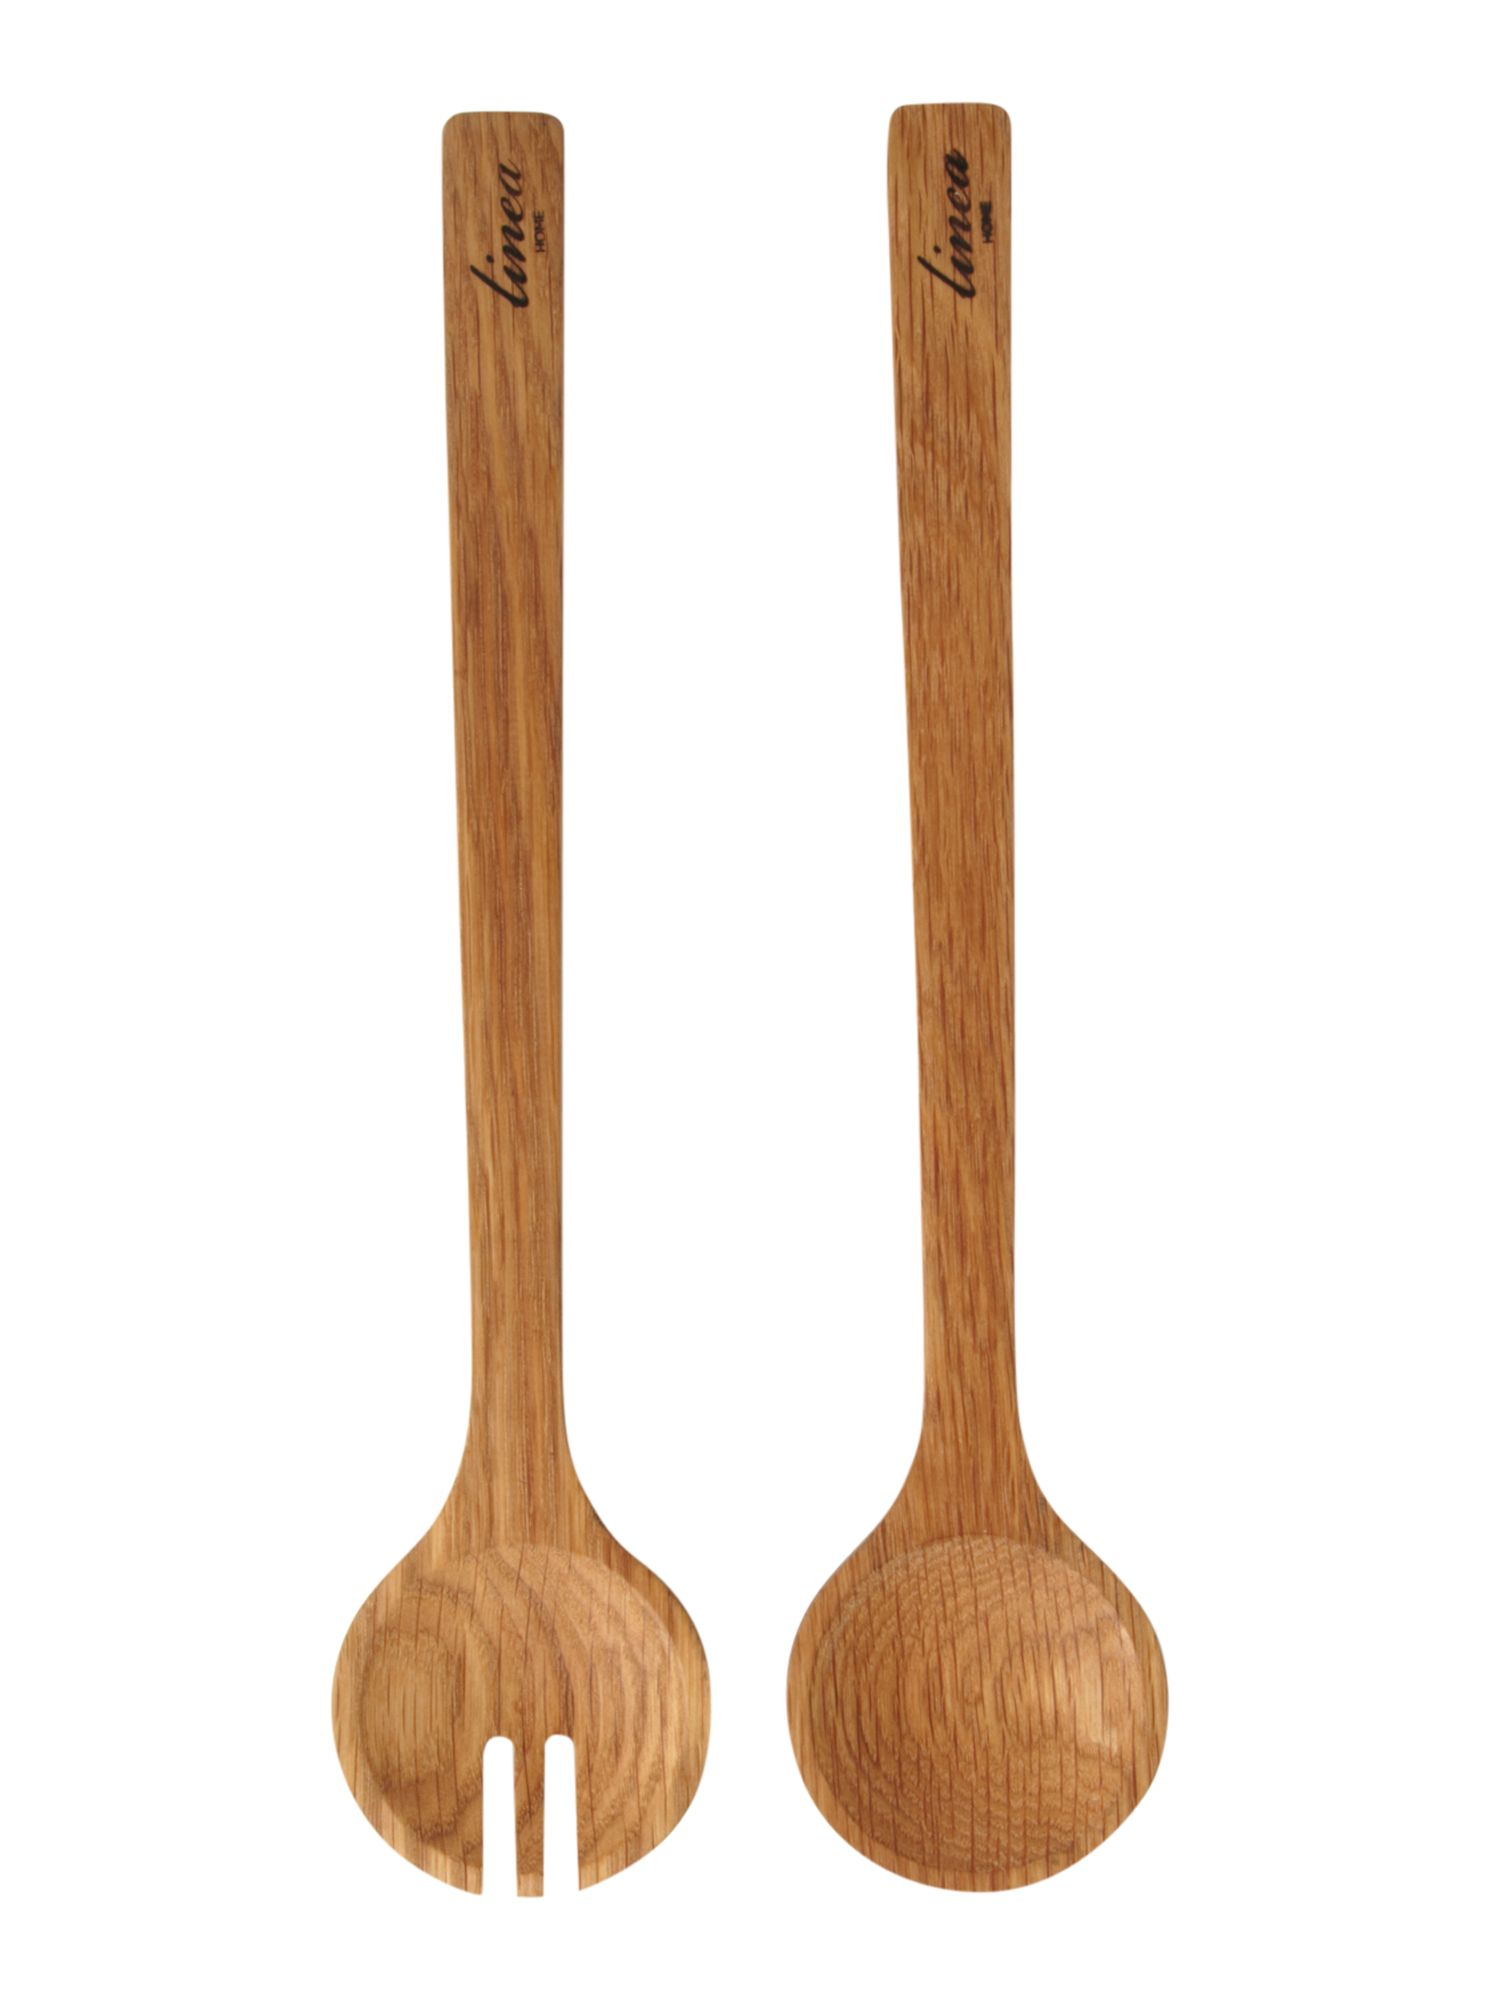 Oak utensil set